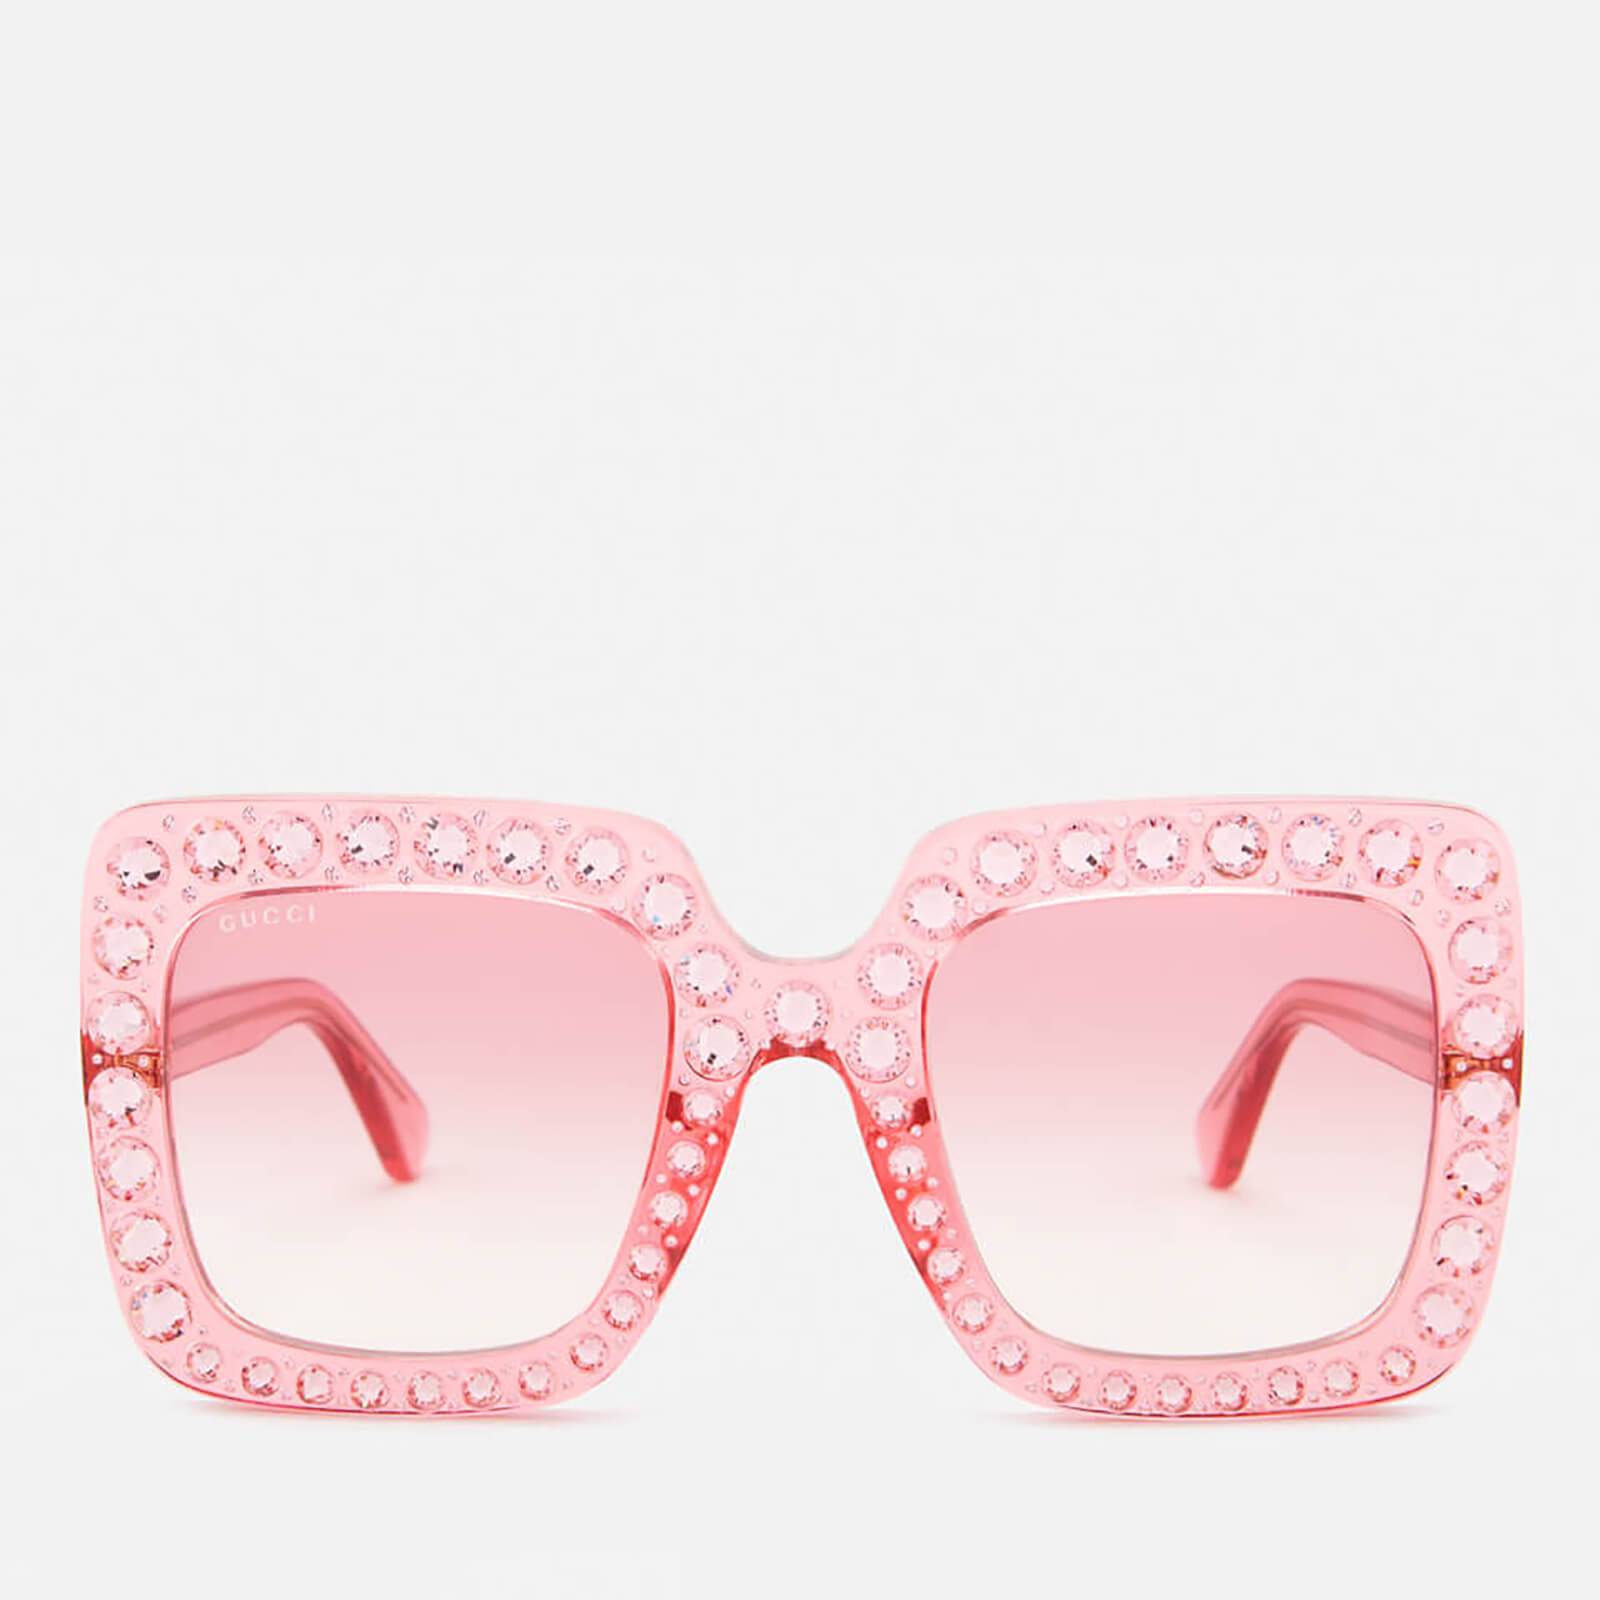 0c093185e9ebb Gucci Women s Large Square Frame Sunglasses - Pink - Free UK Delivery over  £50